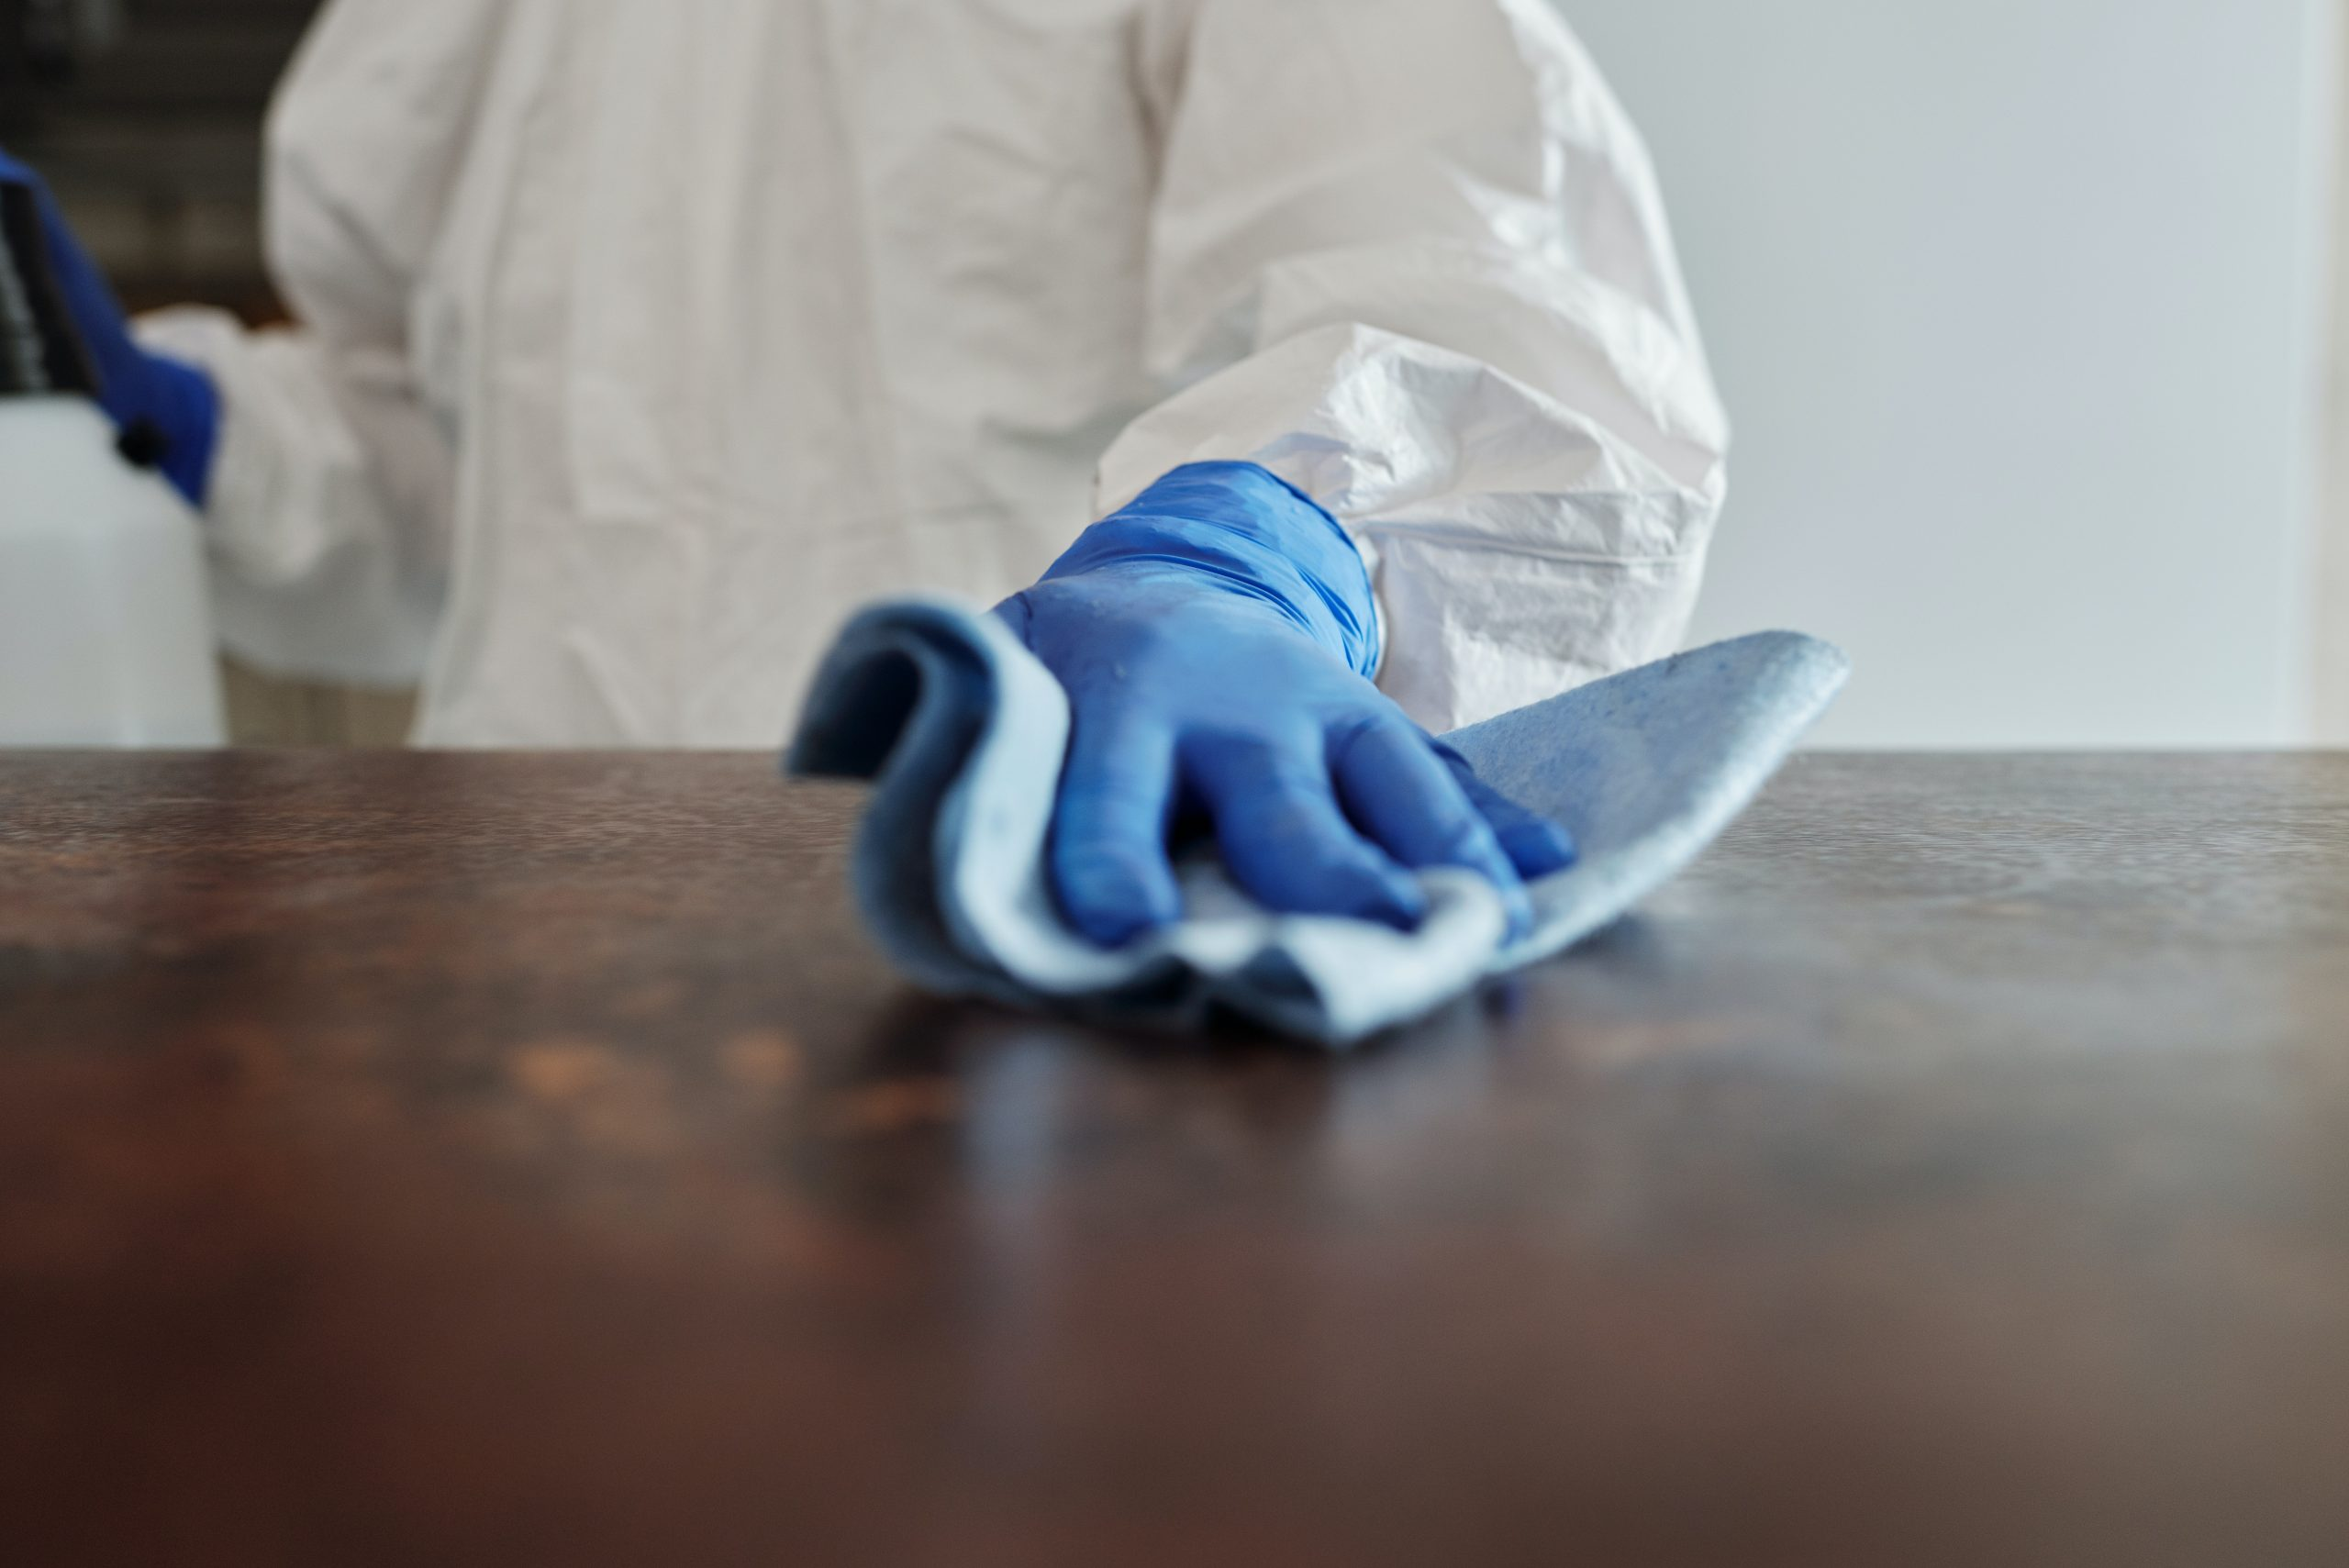 Pest Control - person using gloves wiping a surface